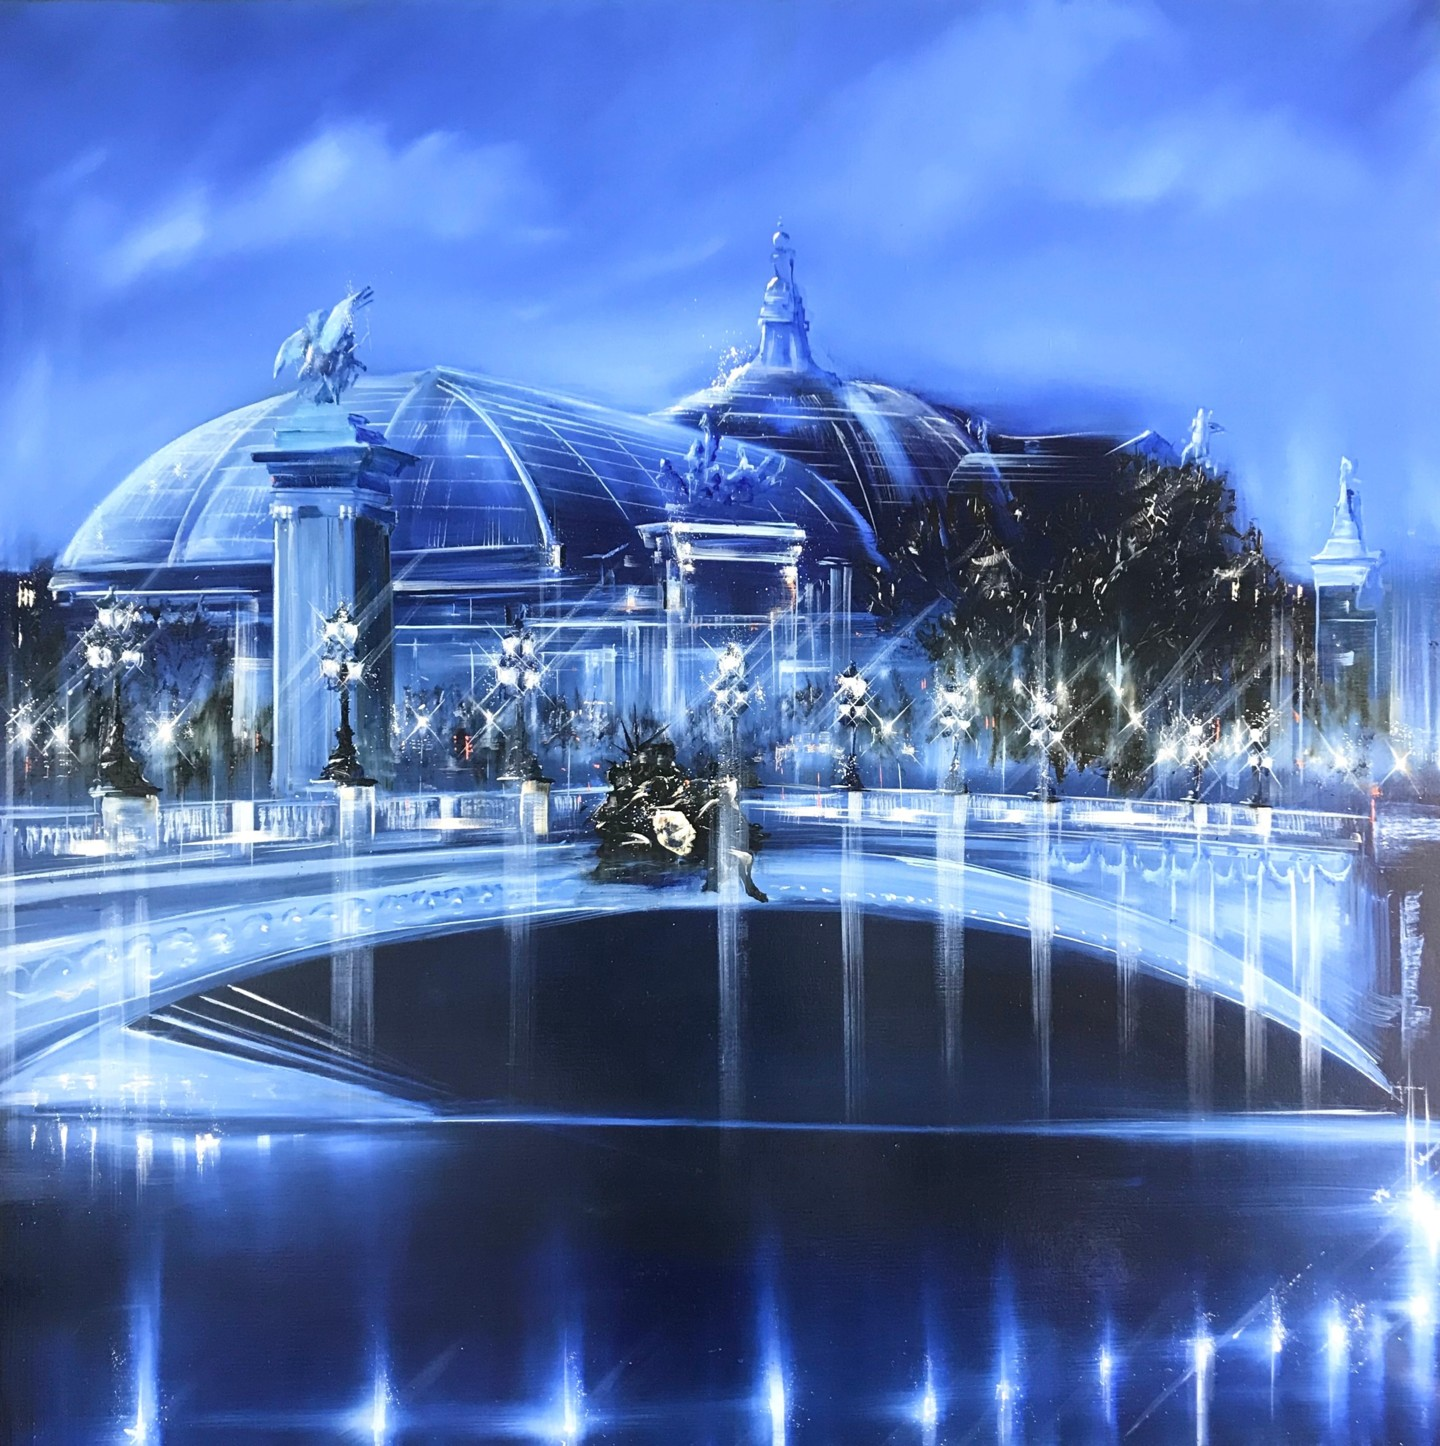 Jerome Guillet - Grand Palais